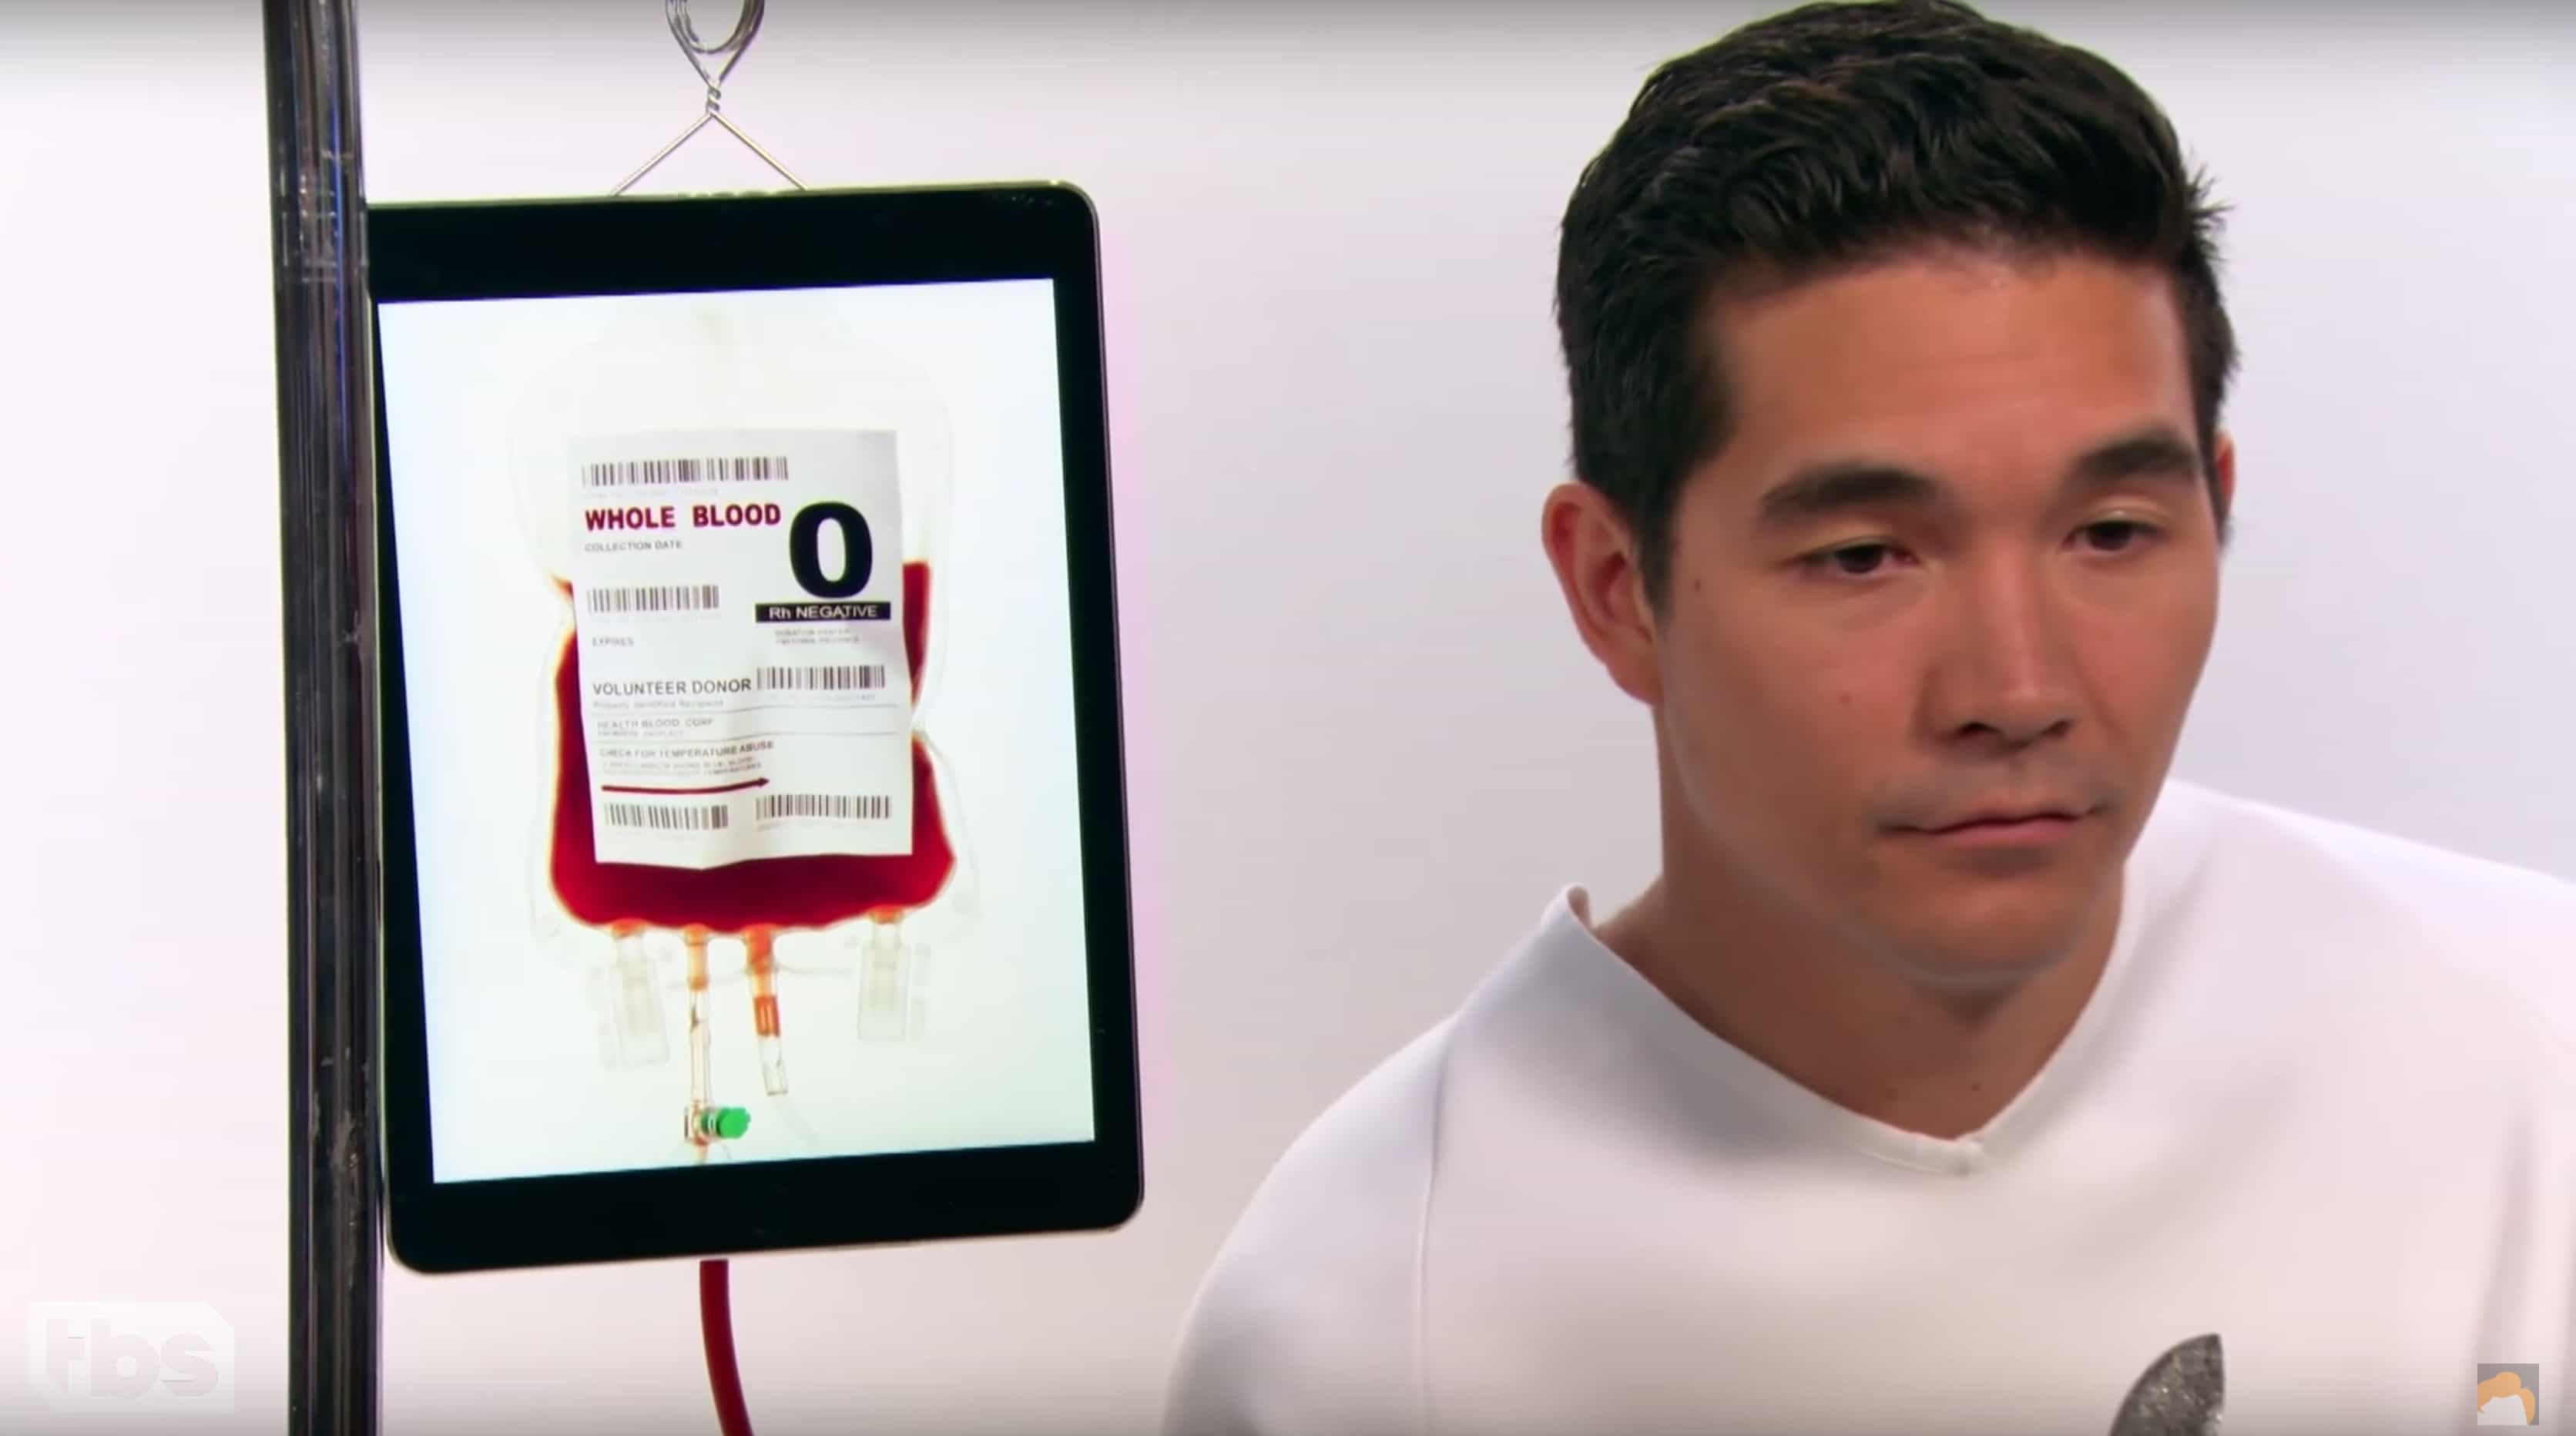 Blood transfusions from an iPad?